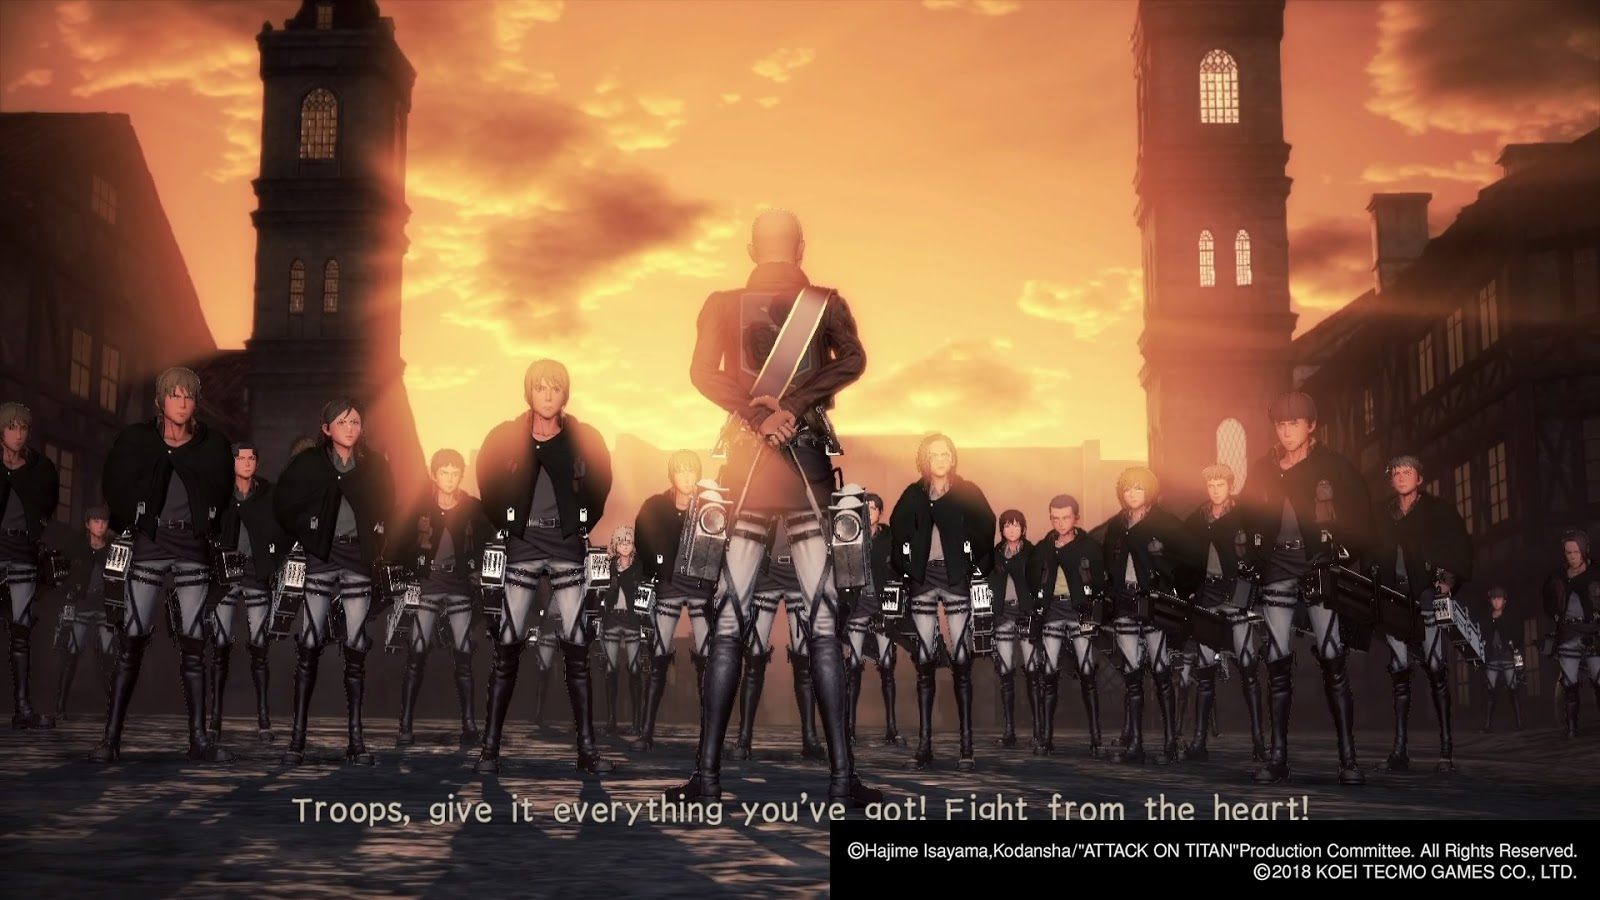 Attack on Titan 2 Review - Freedom or Folly? - We Know